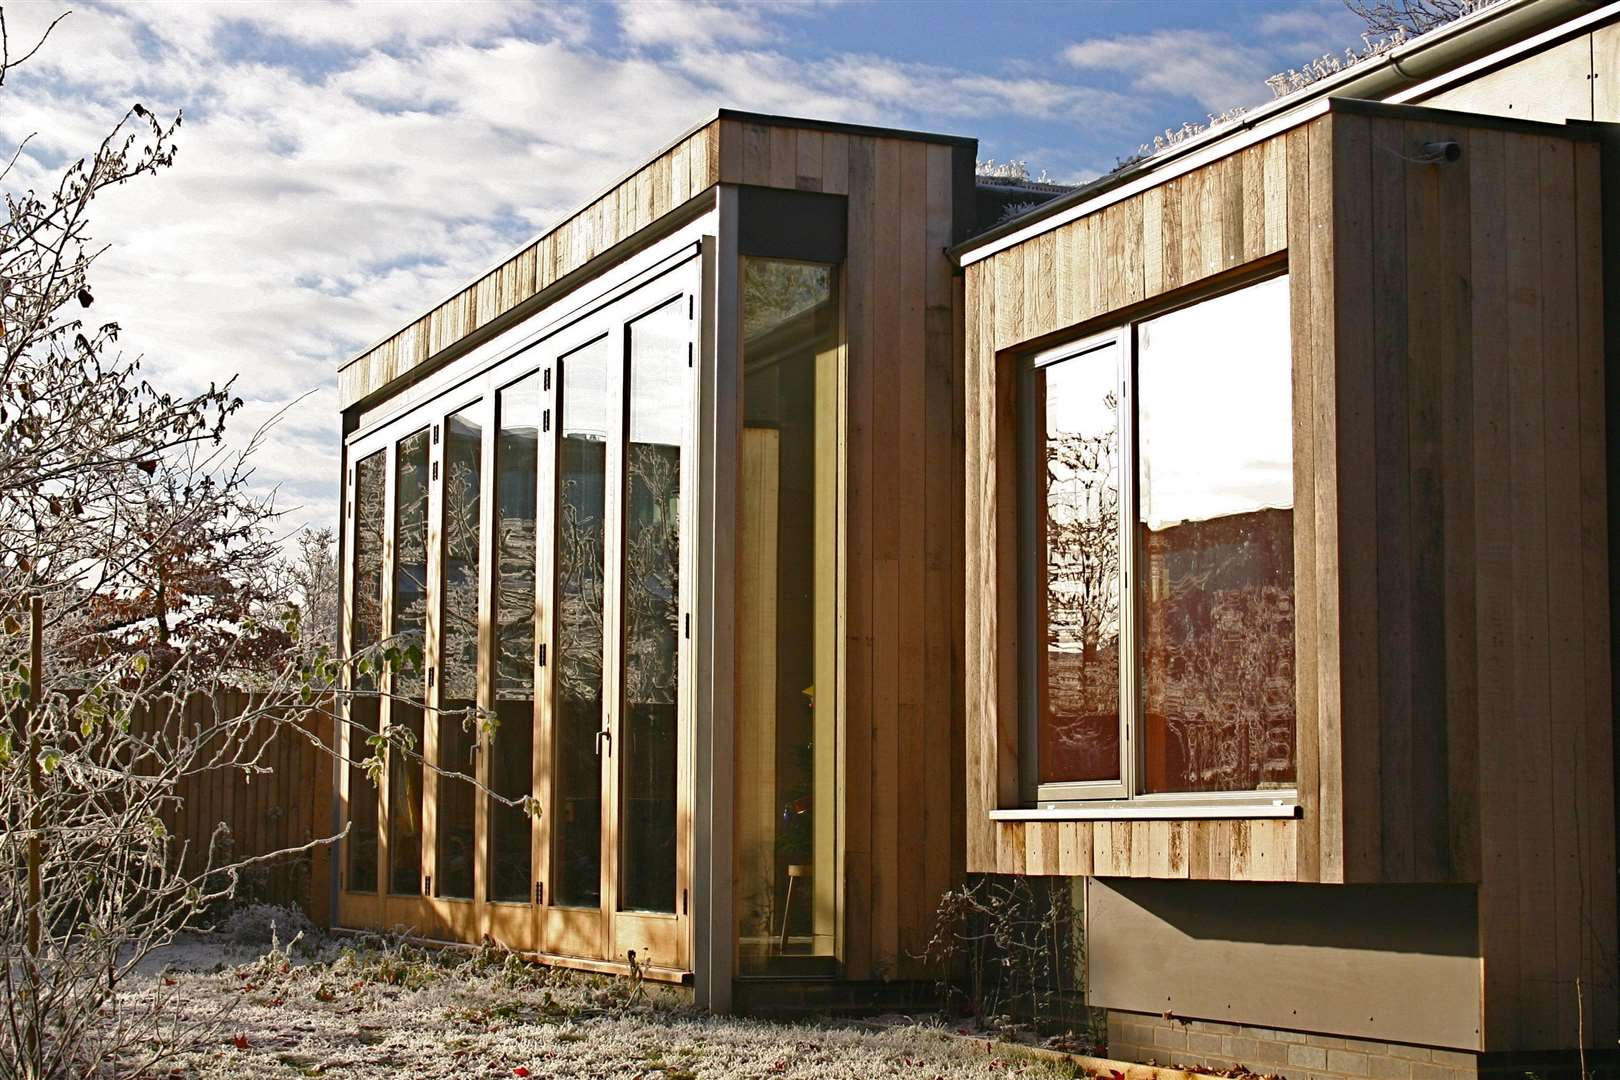 Media photographs Open Eco Homes 2017, sourced by Open Eco Homes. (15338261)